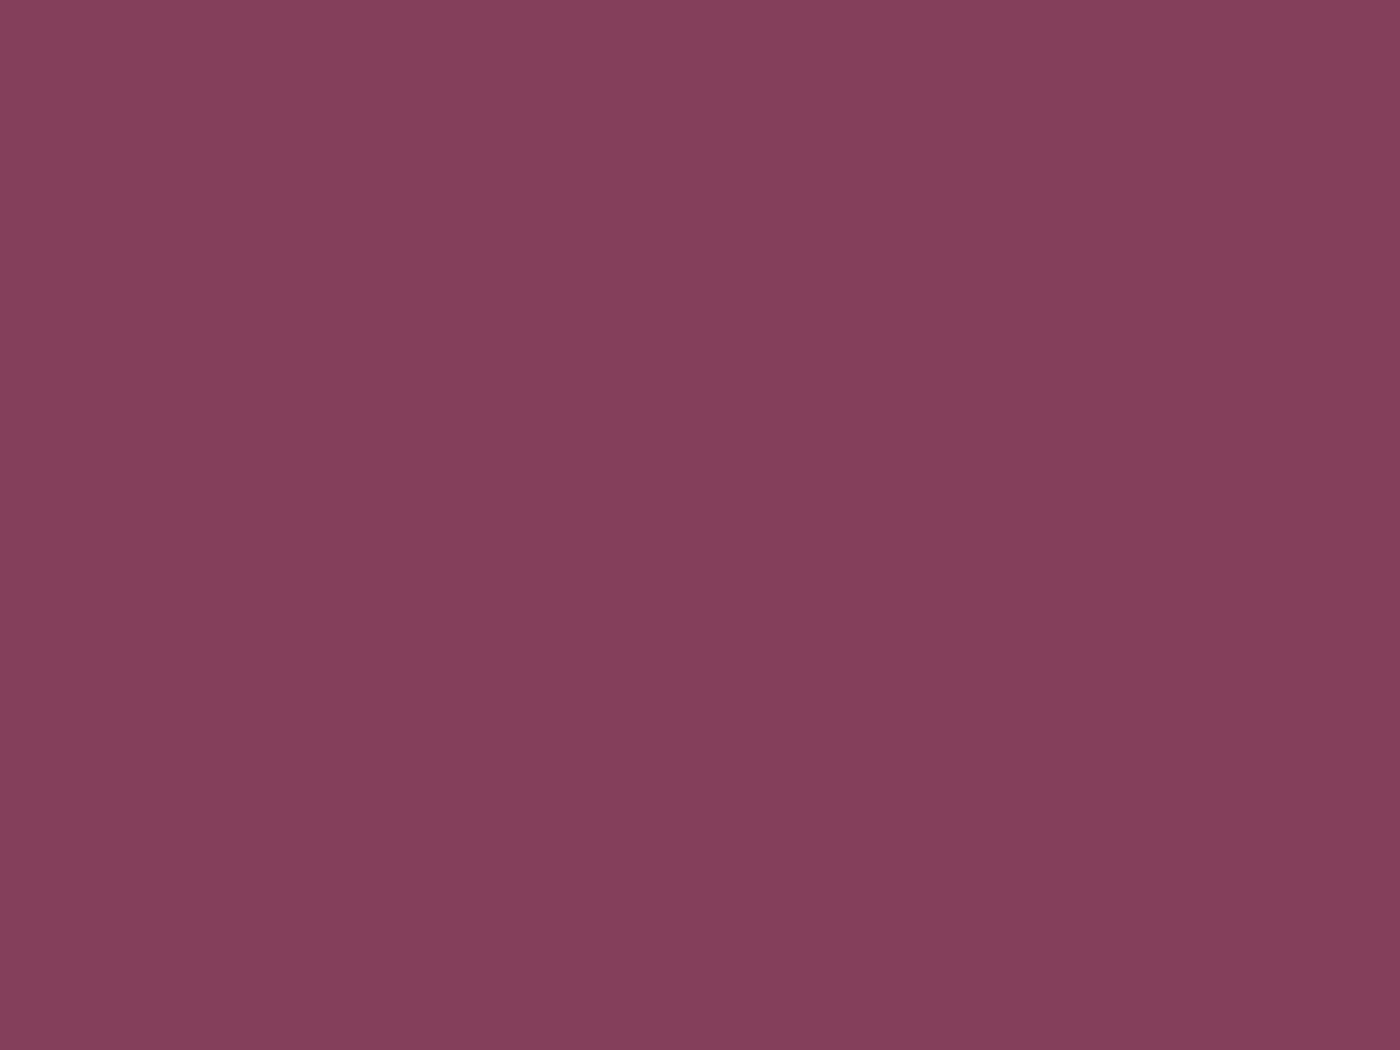 1400x1050 Deep Ruby Solid Color Background